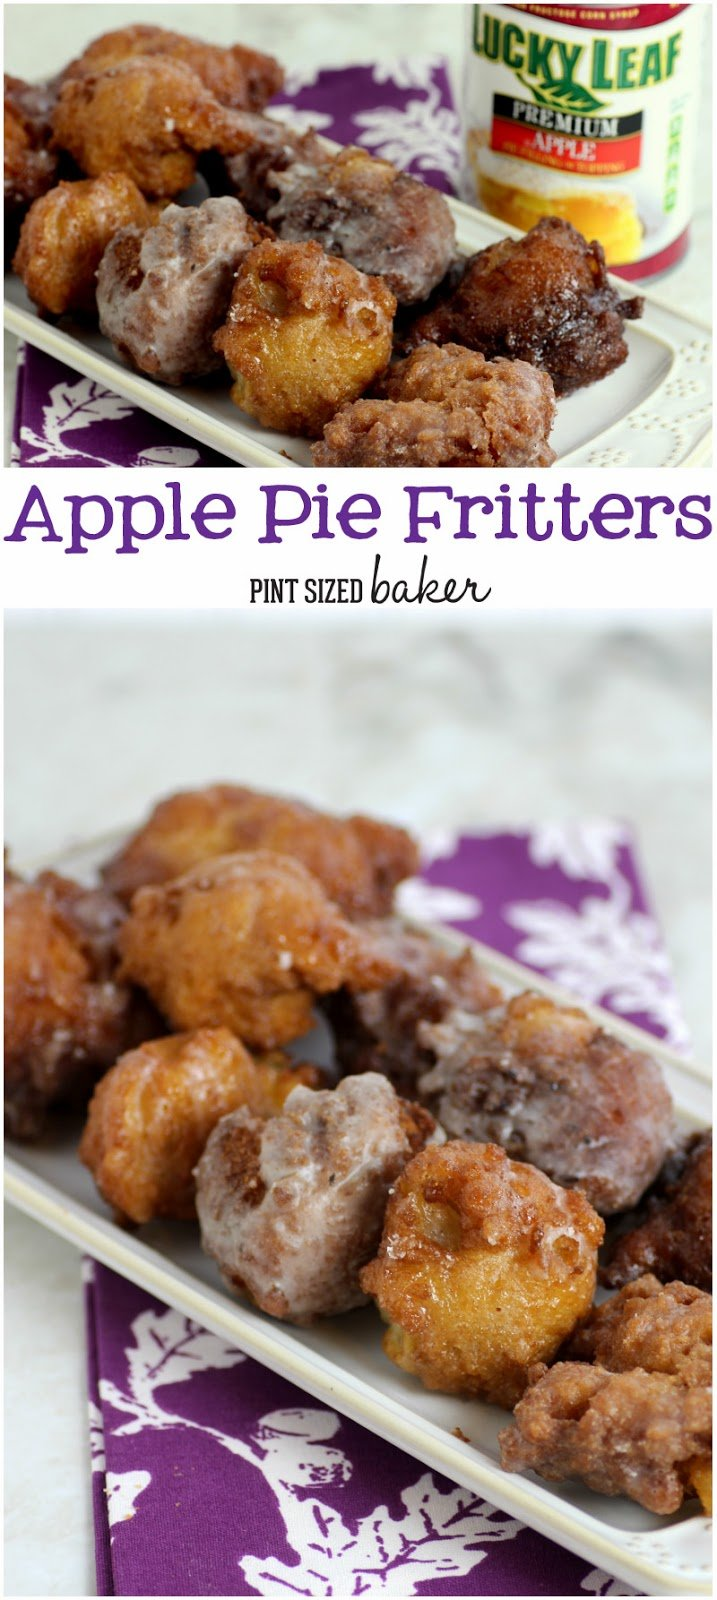 Homemade Apple Pie Fritters. Easier than you think and cheaper than buying them. #BakeThisHolidaySpecial